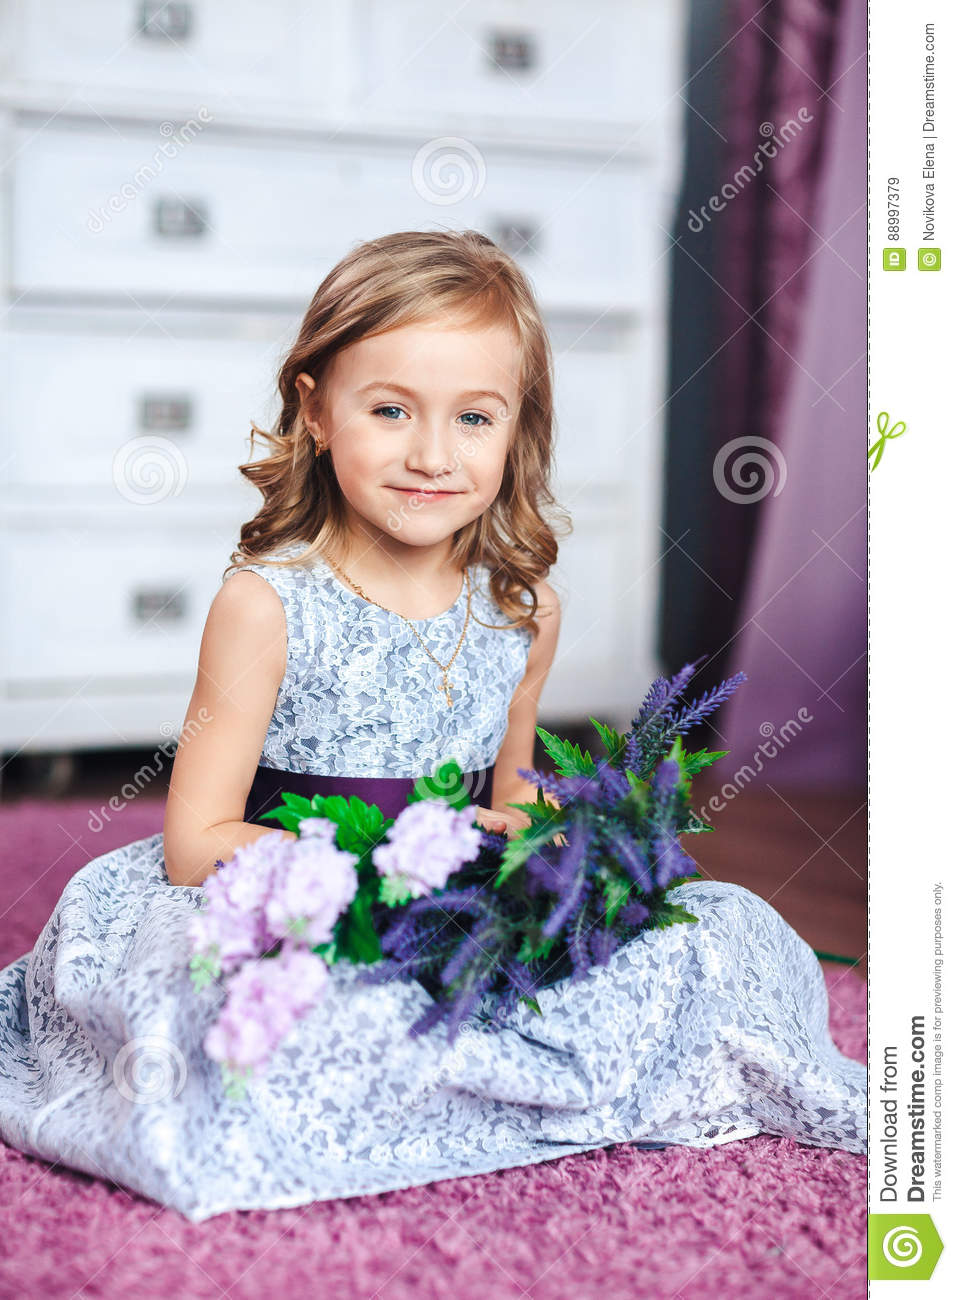 Little blonde girl in a beautiful dress sits on the floor with little blonde girl in a beautiful dress sits on the floor with flowers on her knees izmirmasajfo Image collections